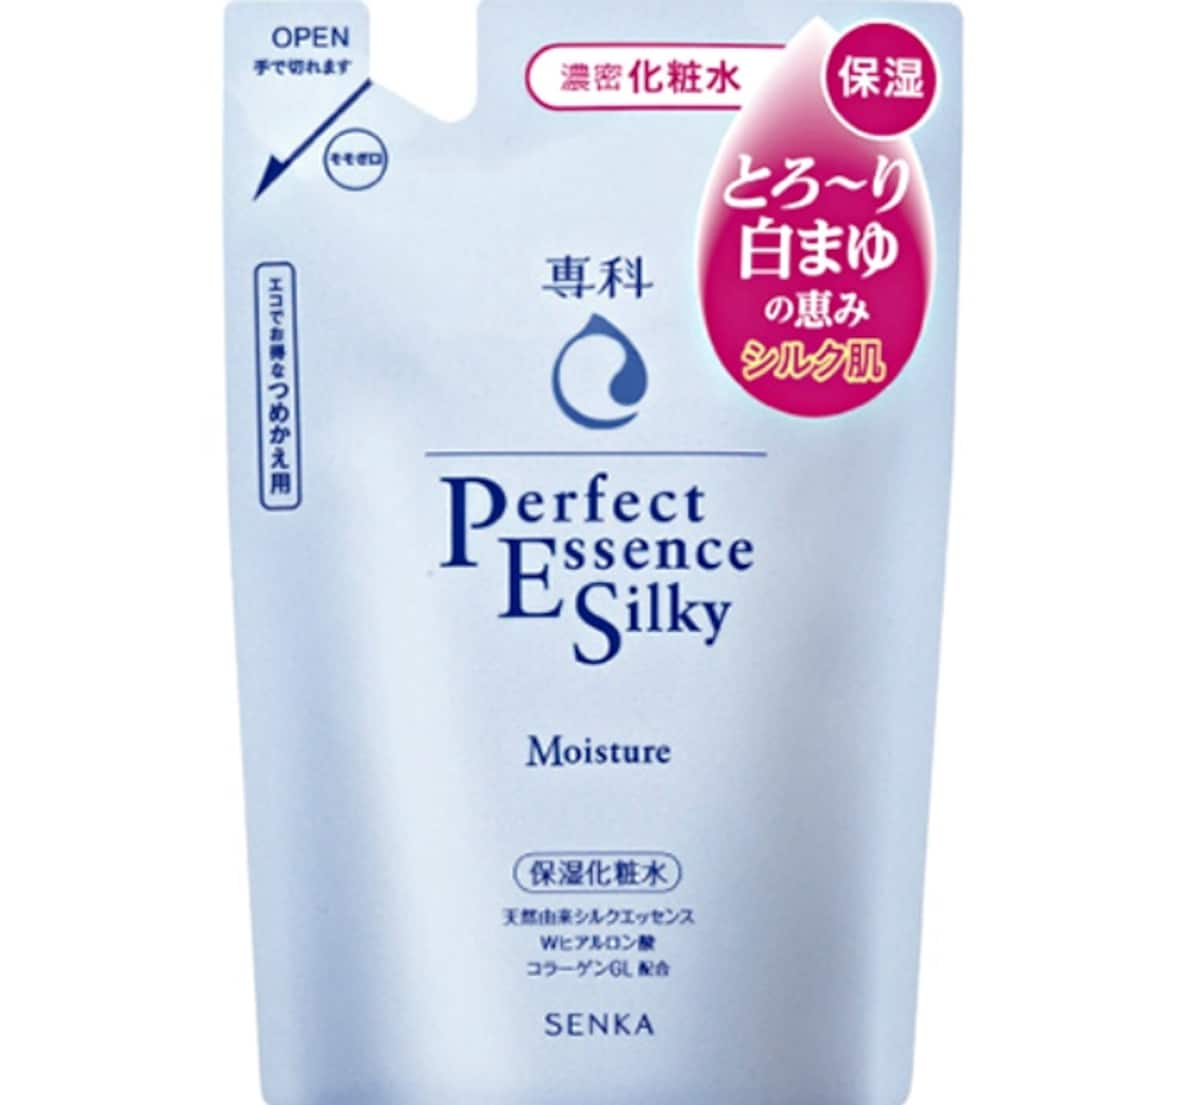 Senka Perfect Essence Silky Moisture